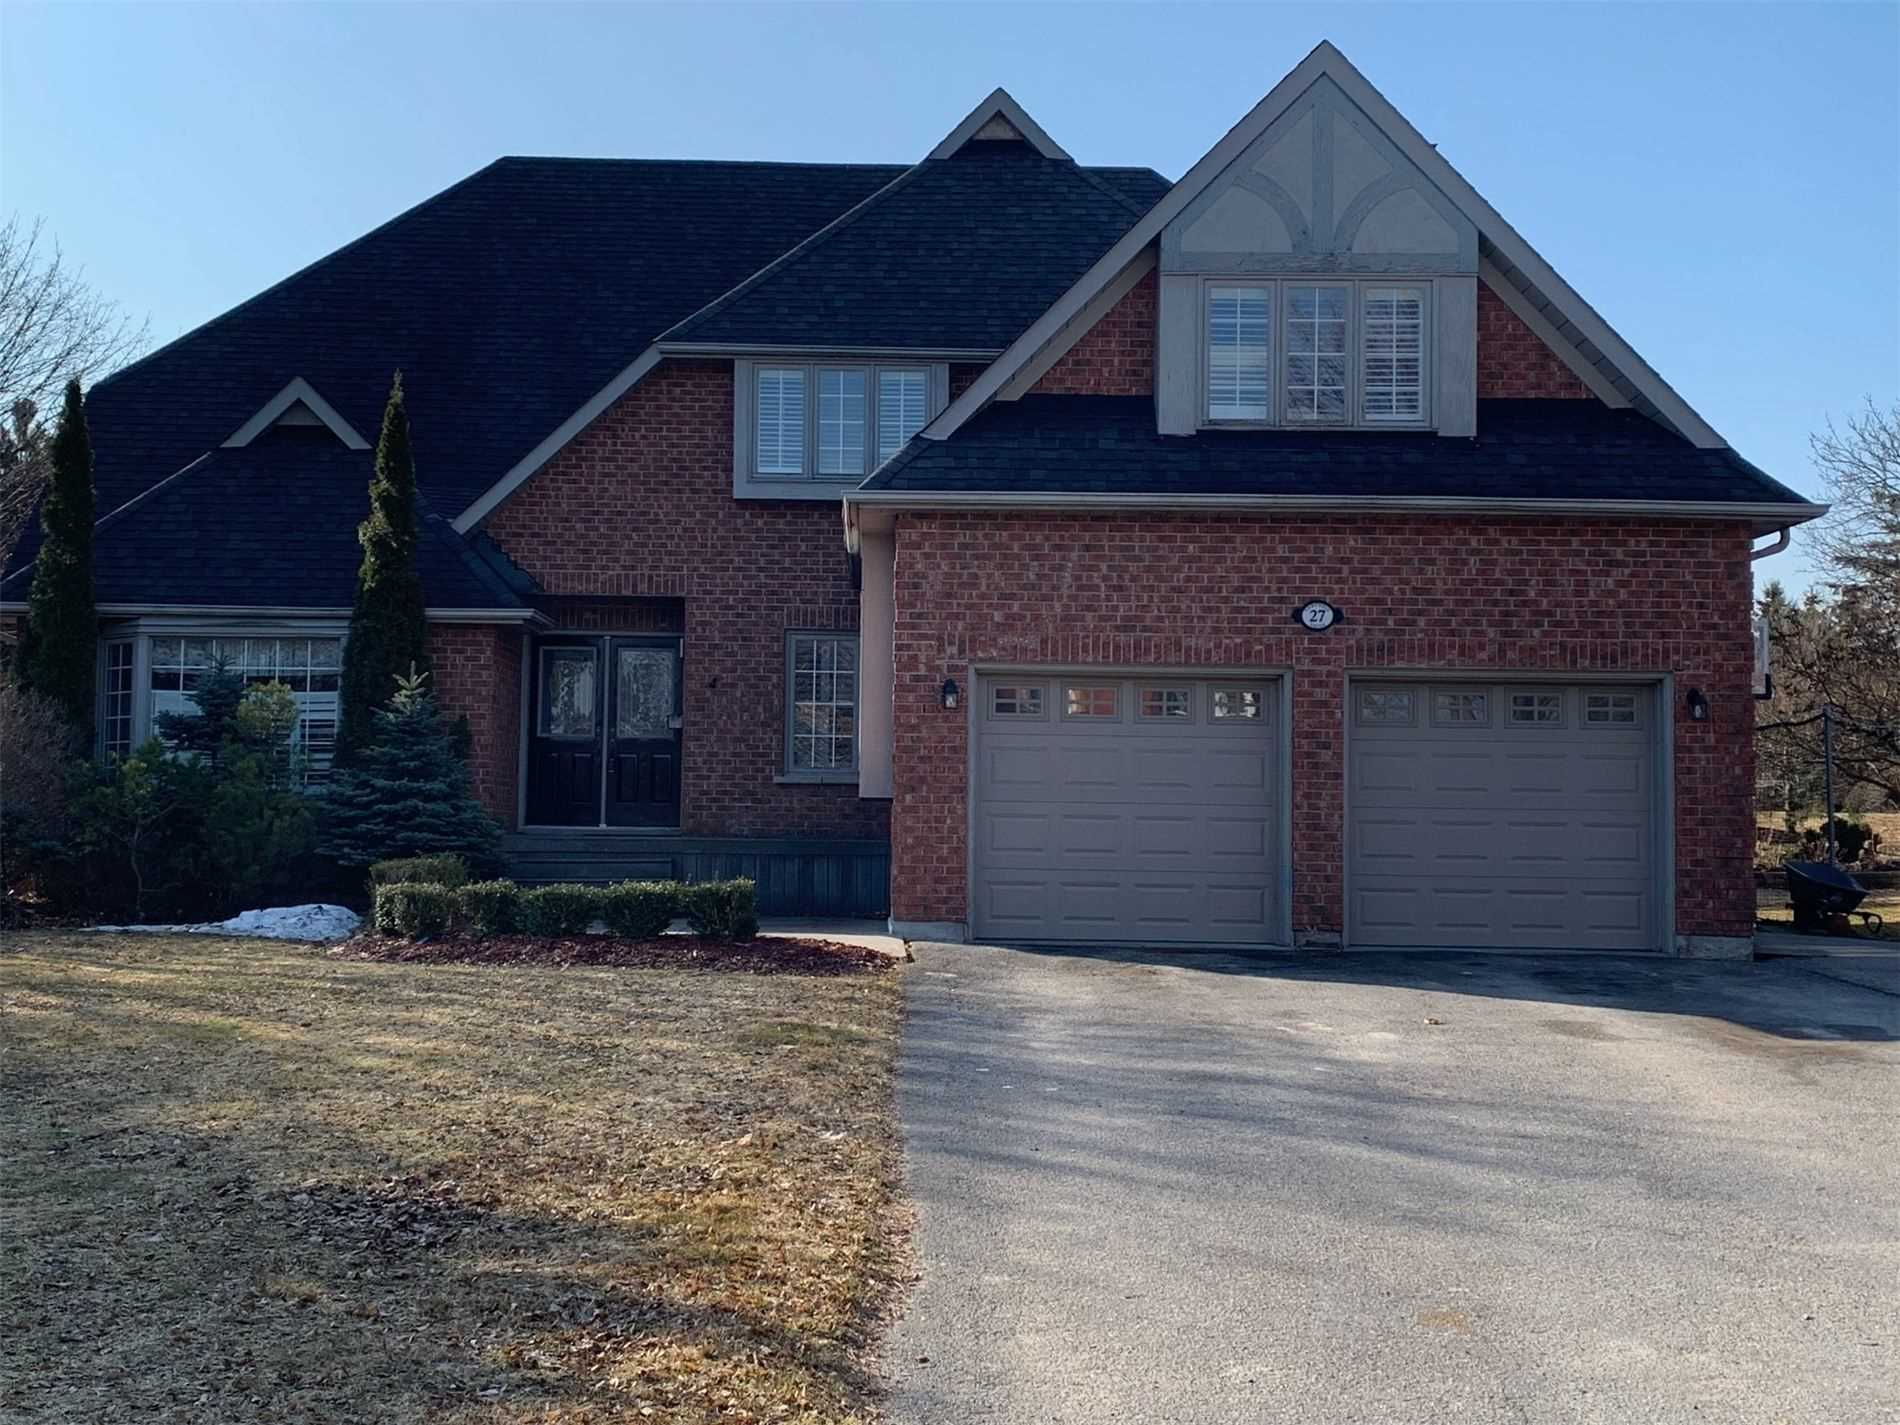 For Sale: 27 Campbell Drive, Uxbridge, ON   4 Bed, 4 Bath House for $999000.00. See 40 photos!